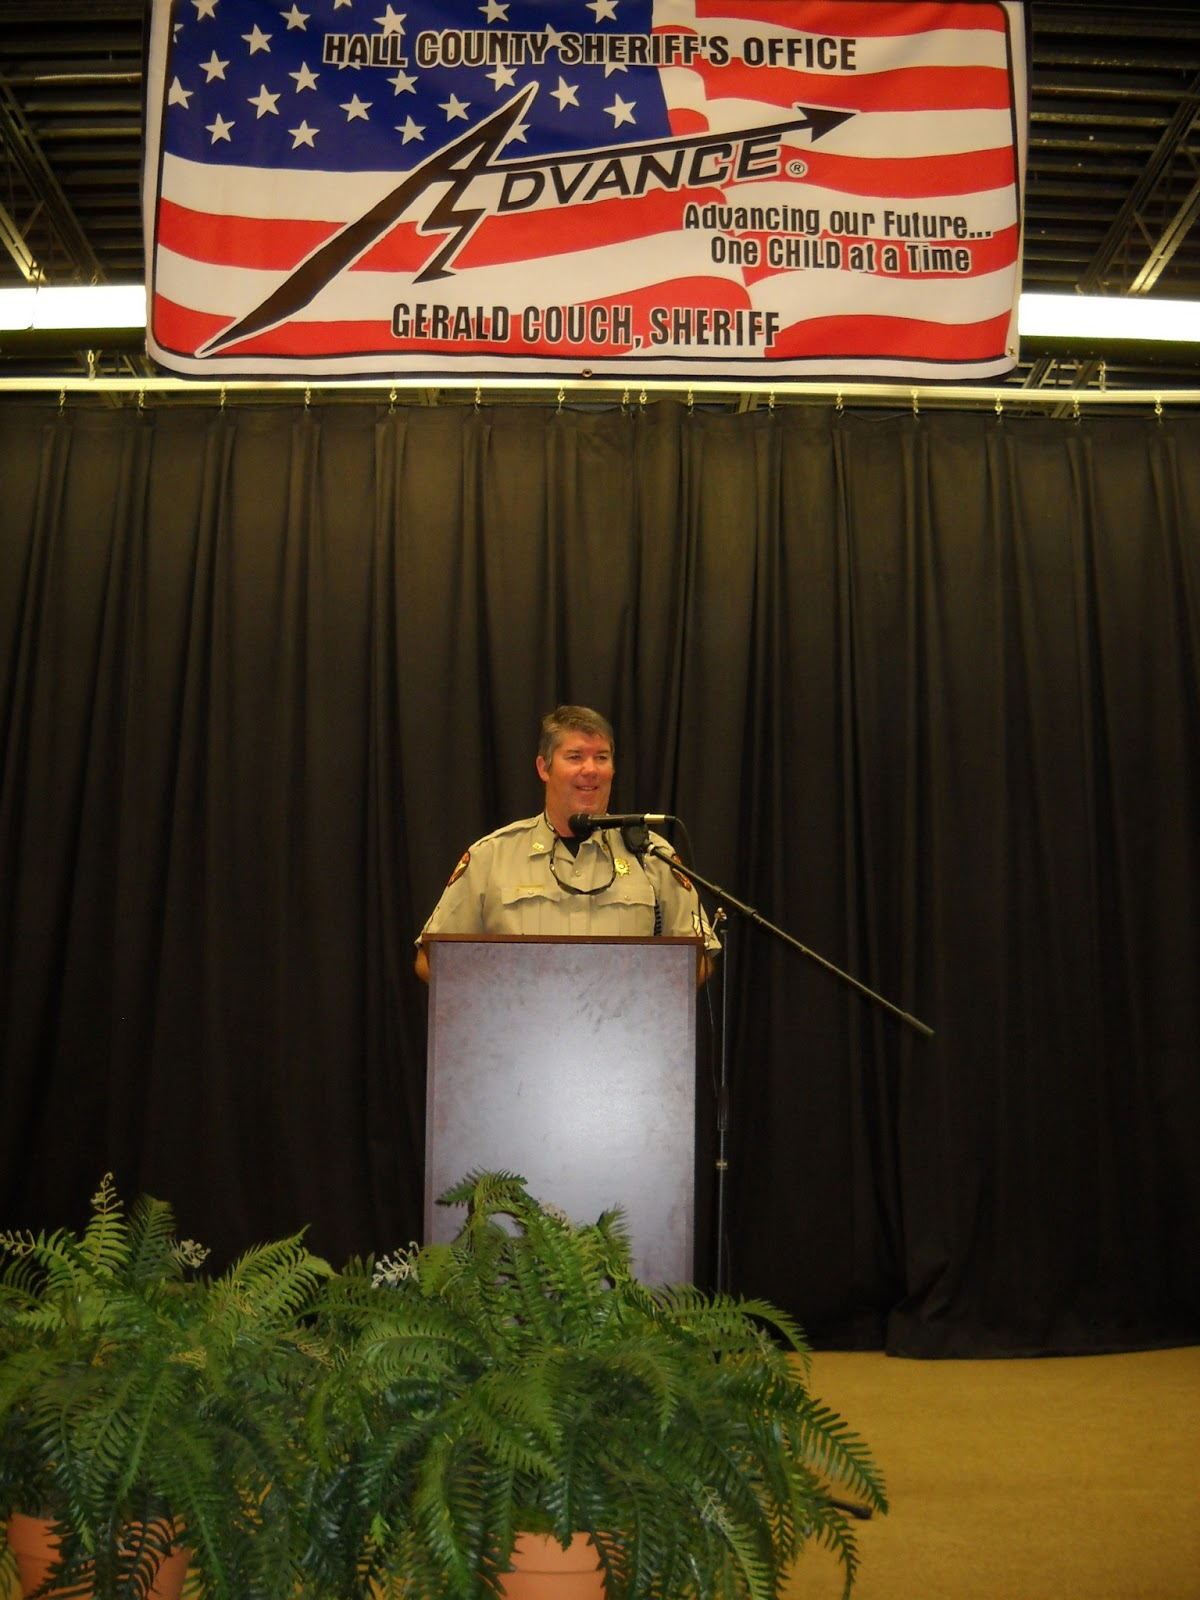 Hall County Sheriff's Office: May 2013